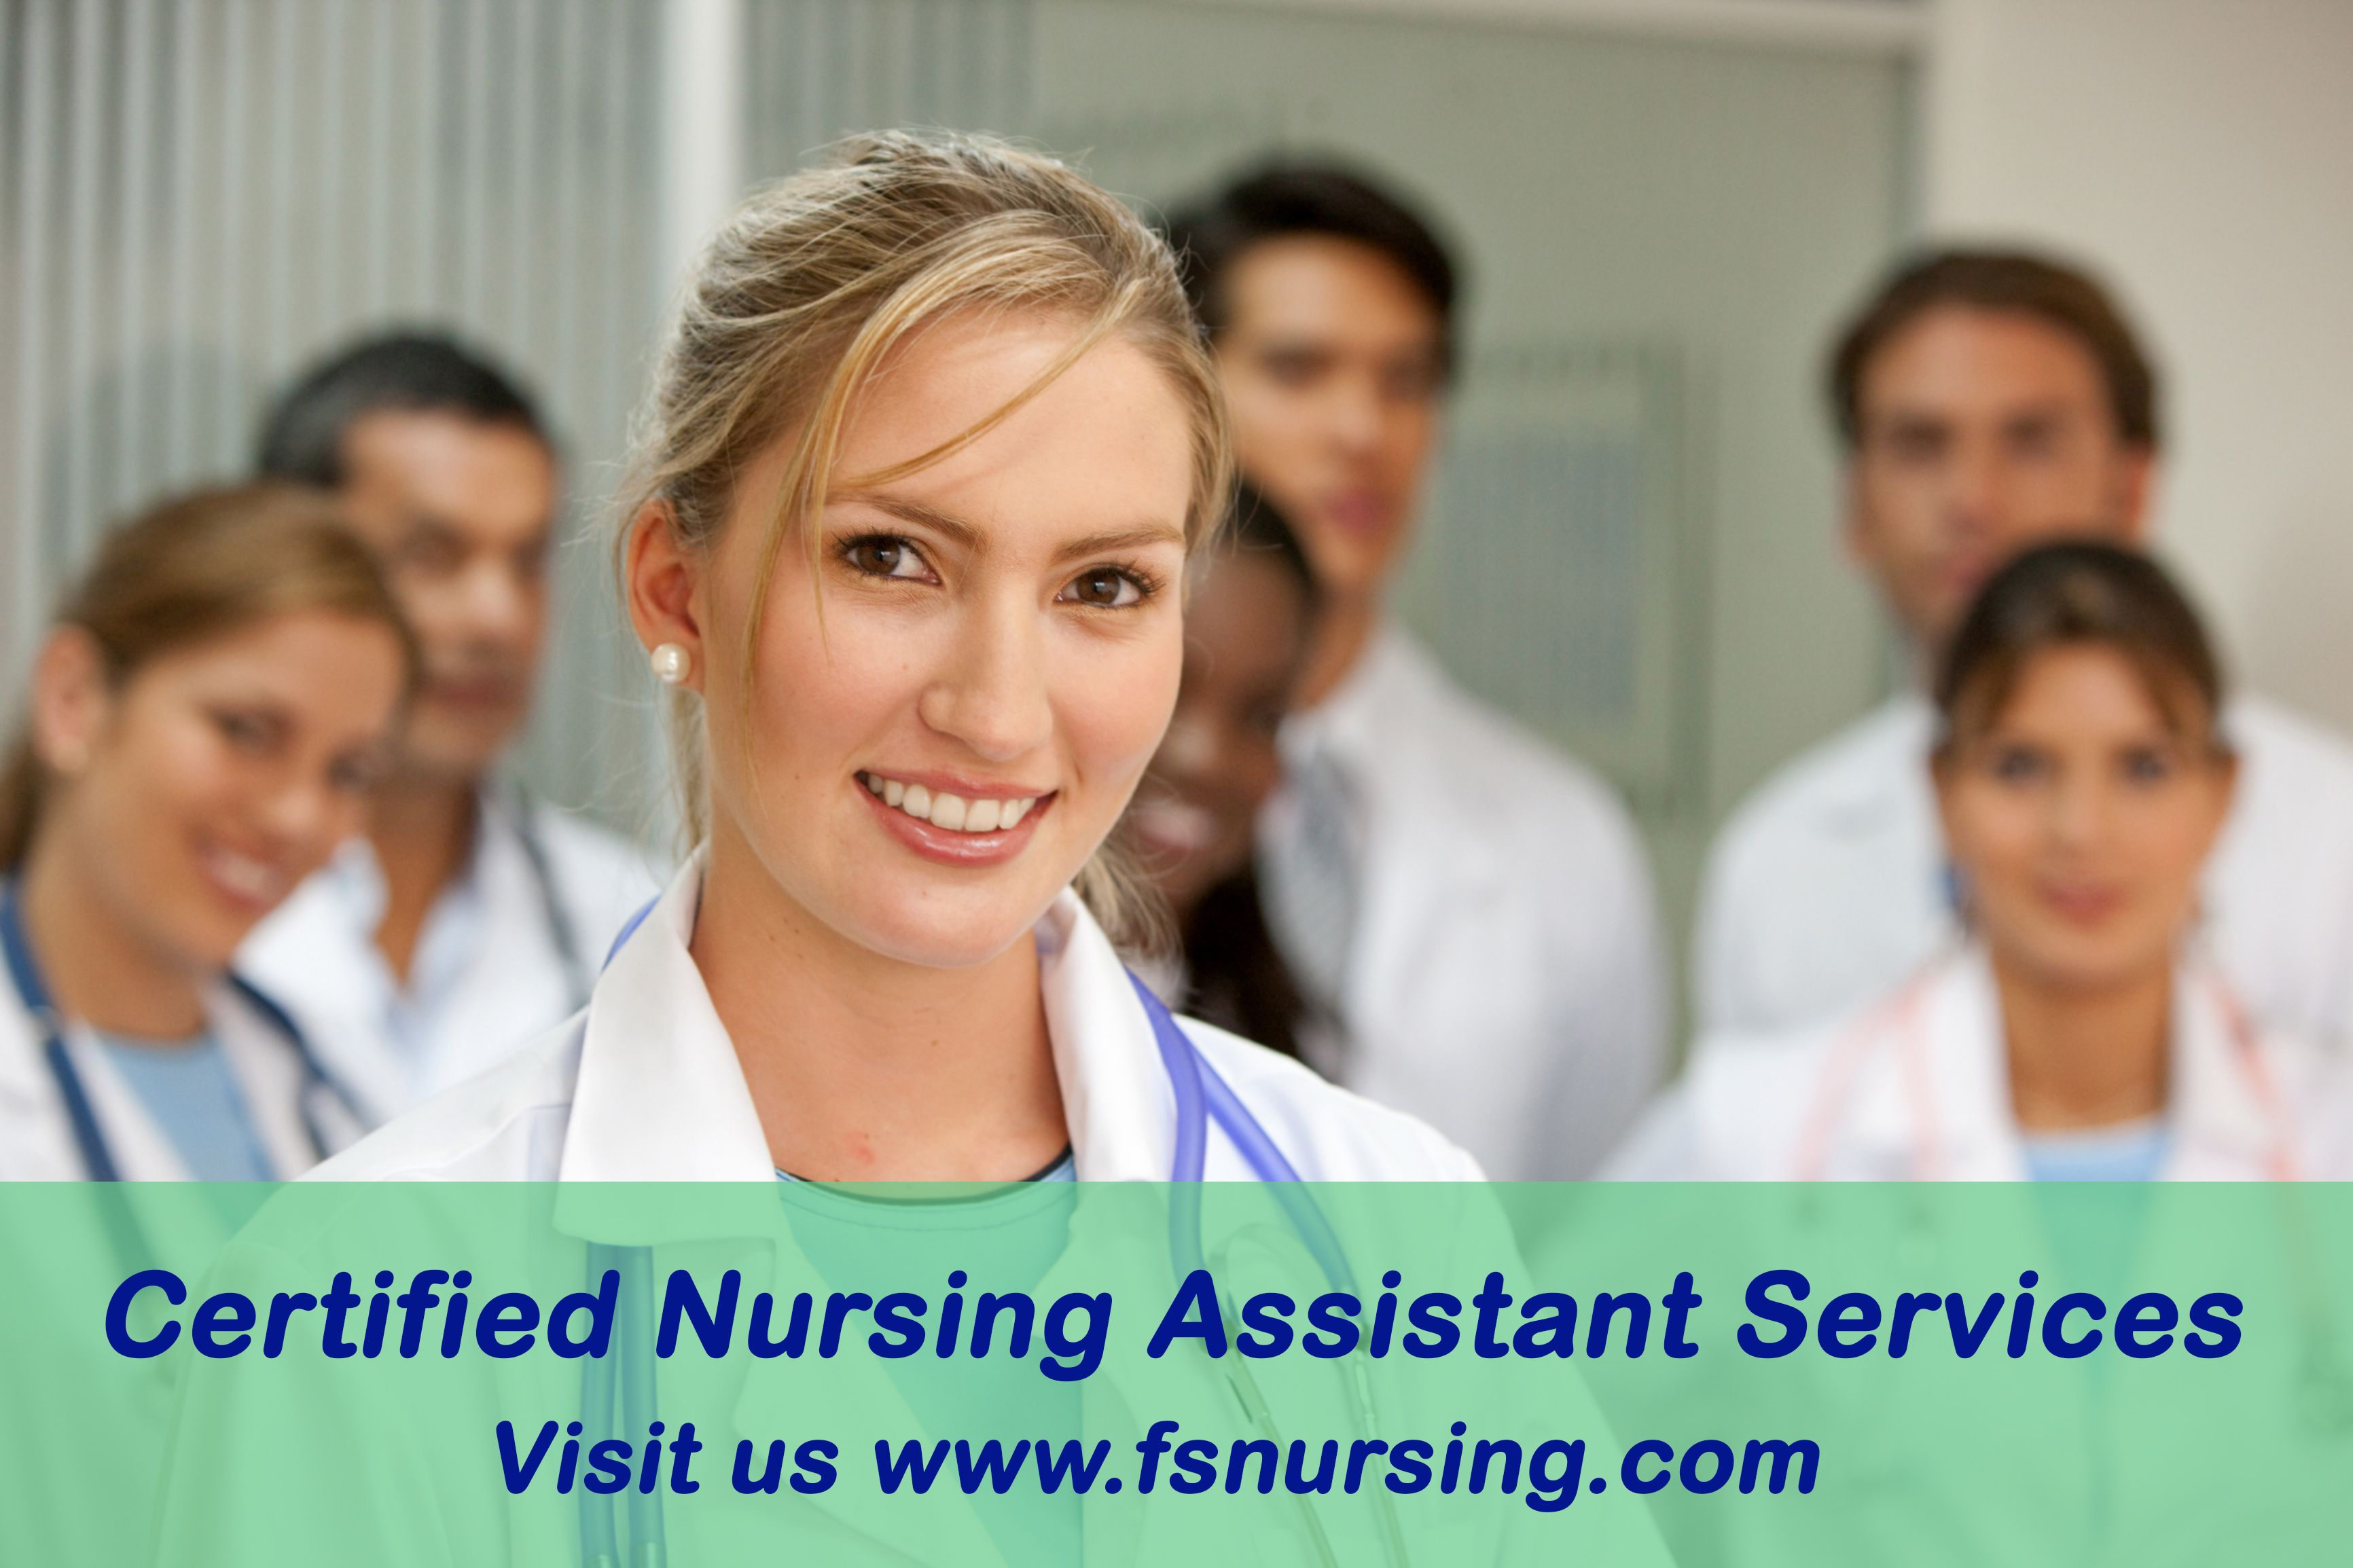 At five star nursing we work with highly qualified care